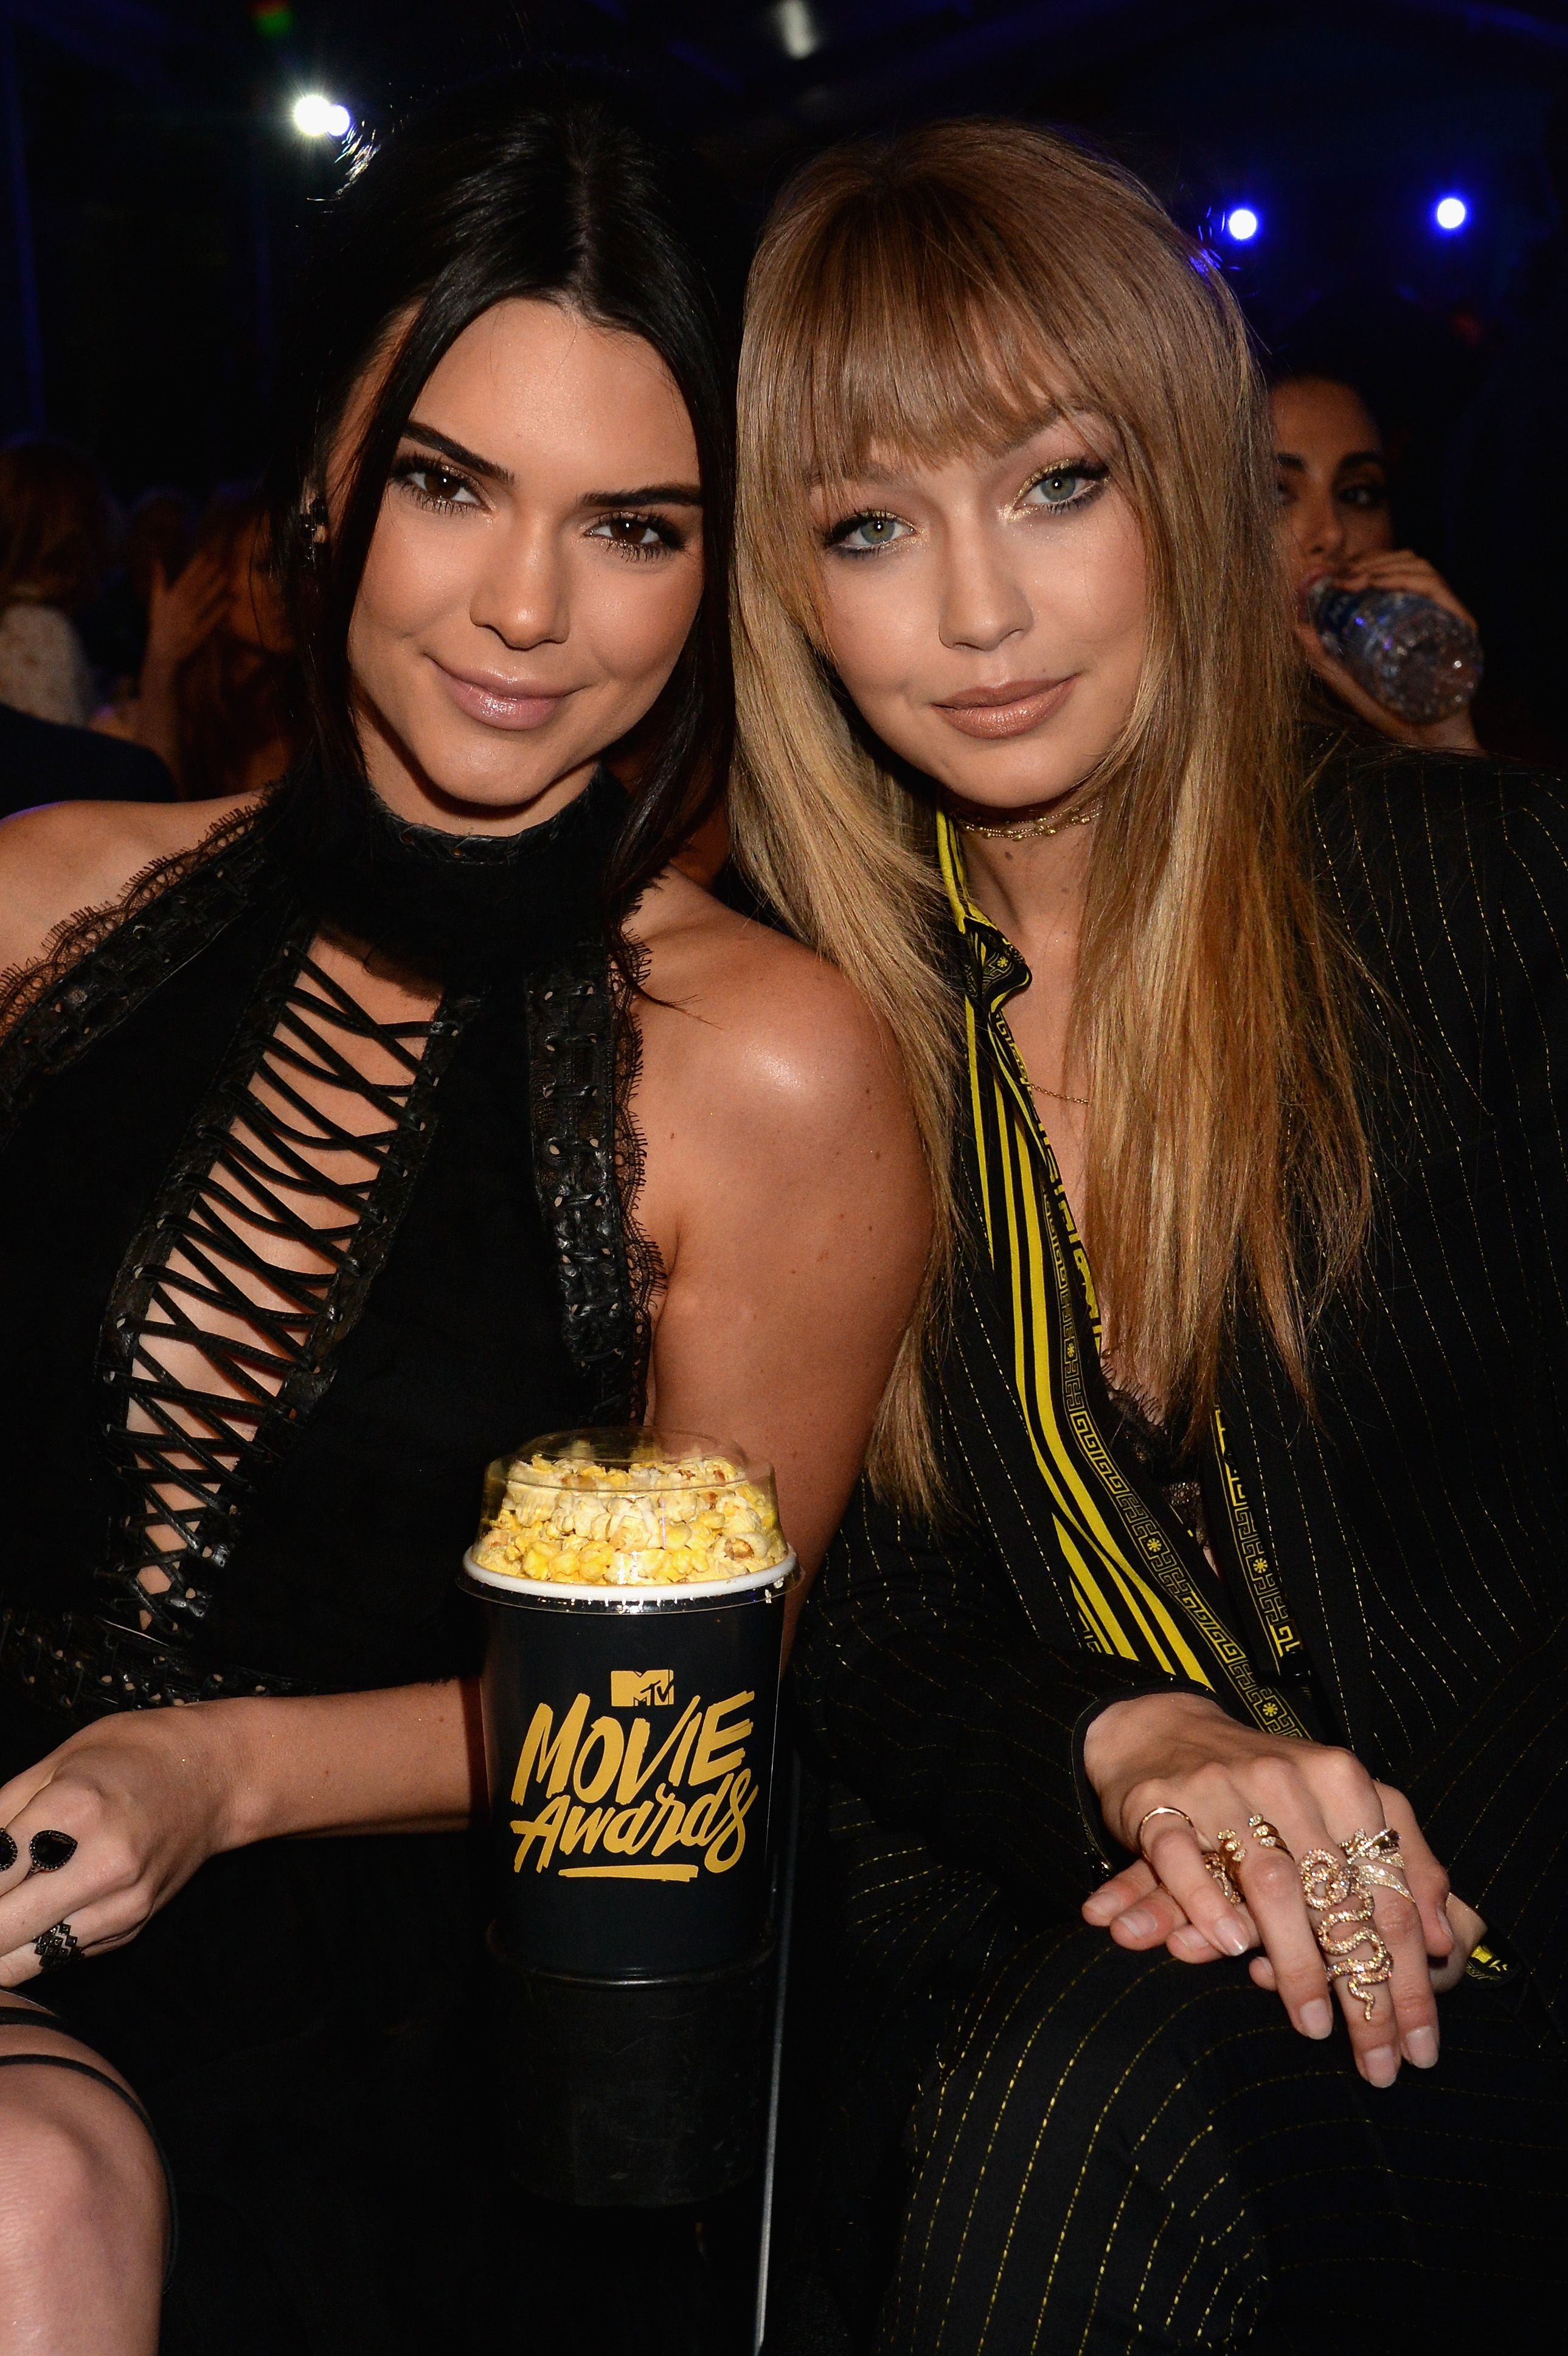 Kendall Jenner, Gigi Hadid And Joan Smalls' Leather Shirt Looks Are The Envy Of Women Everywhere